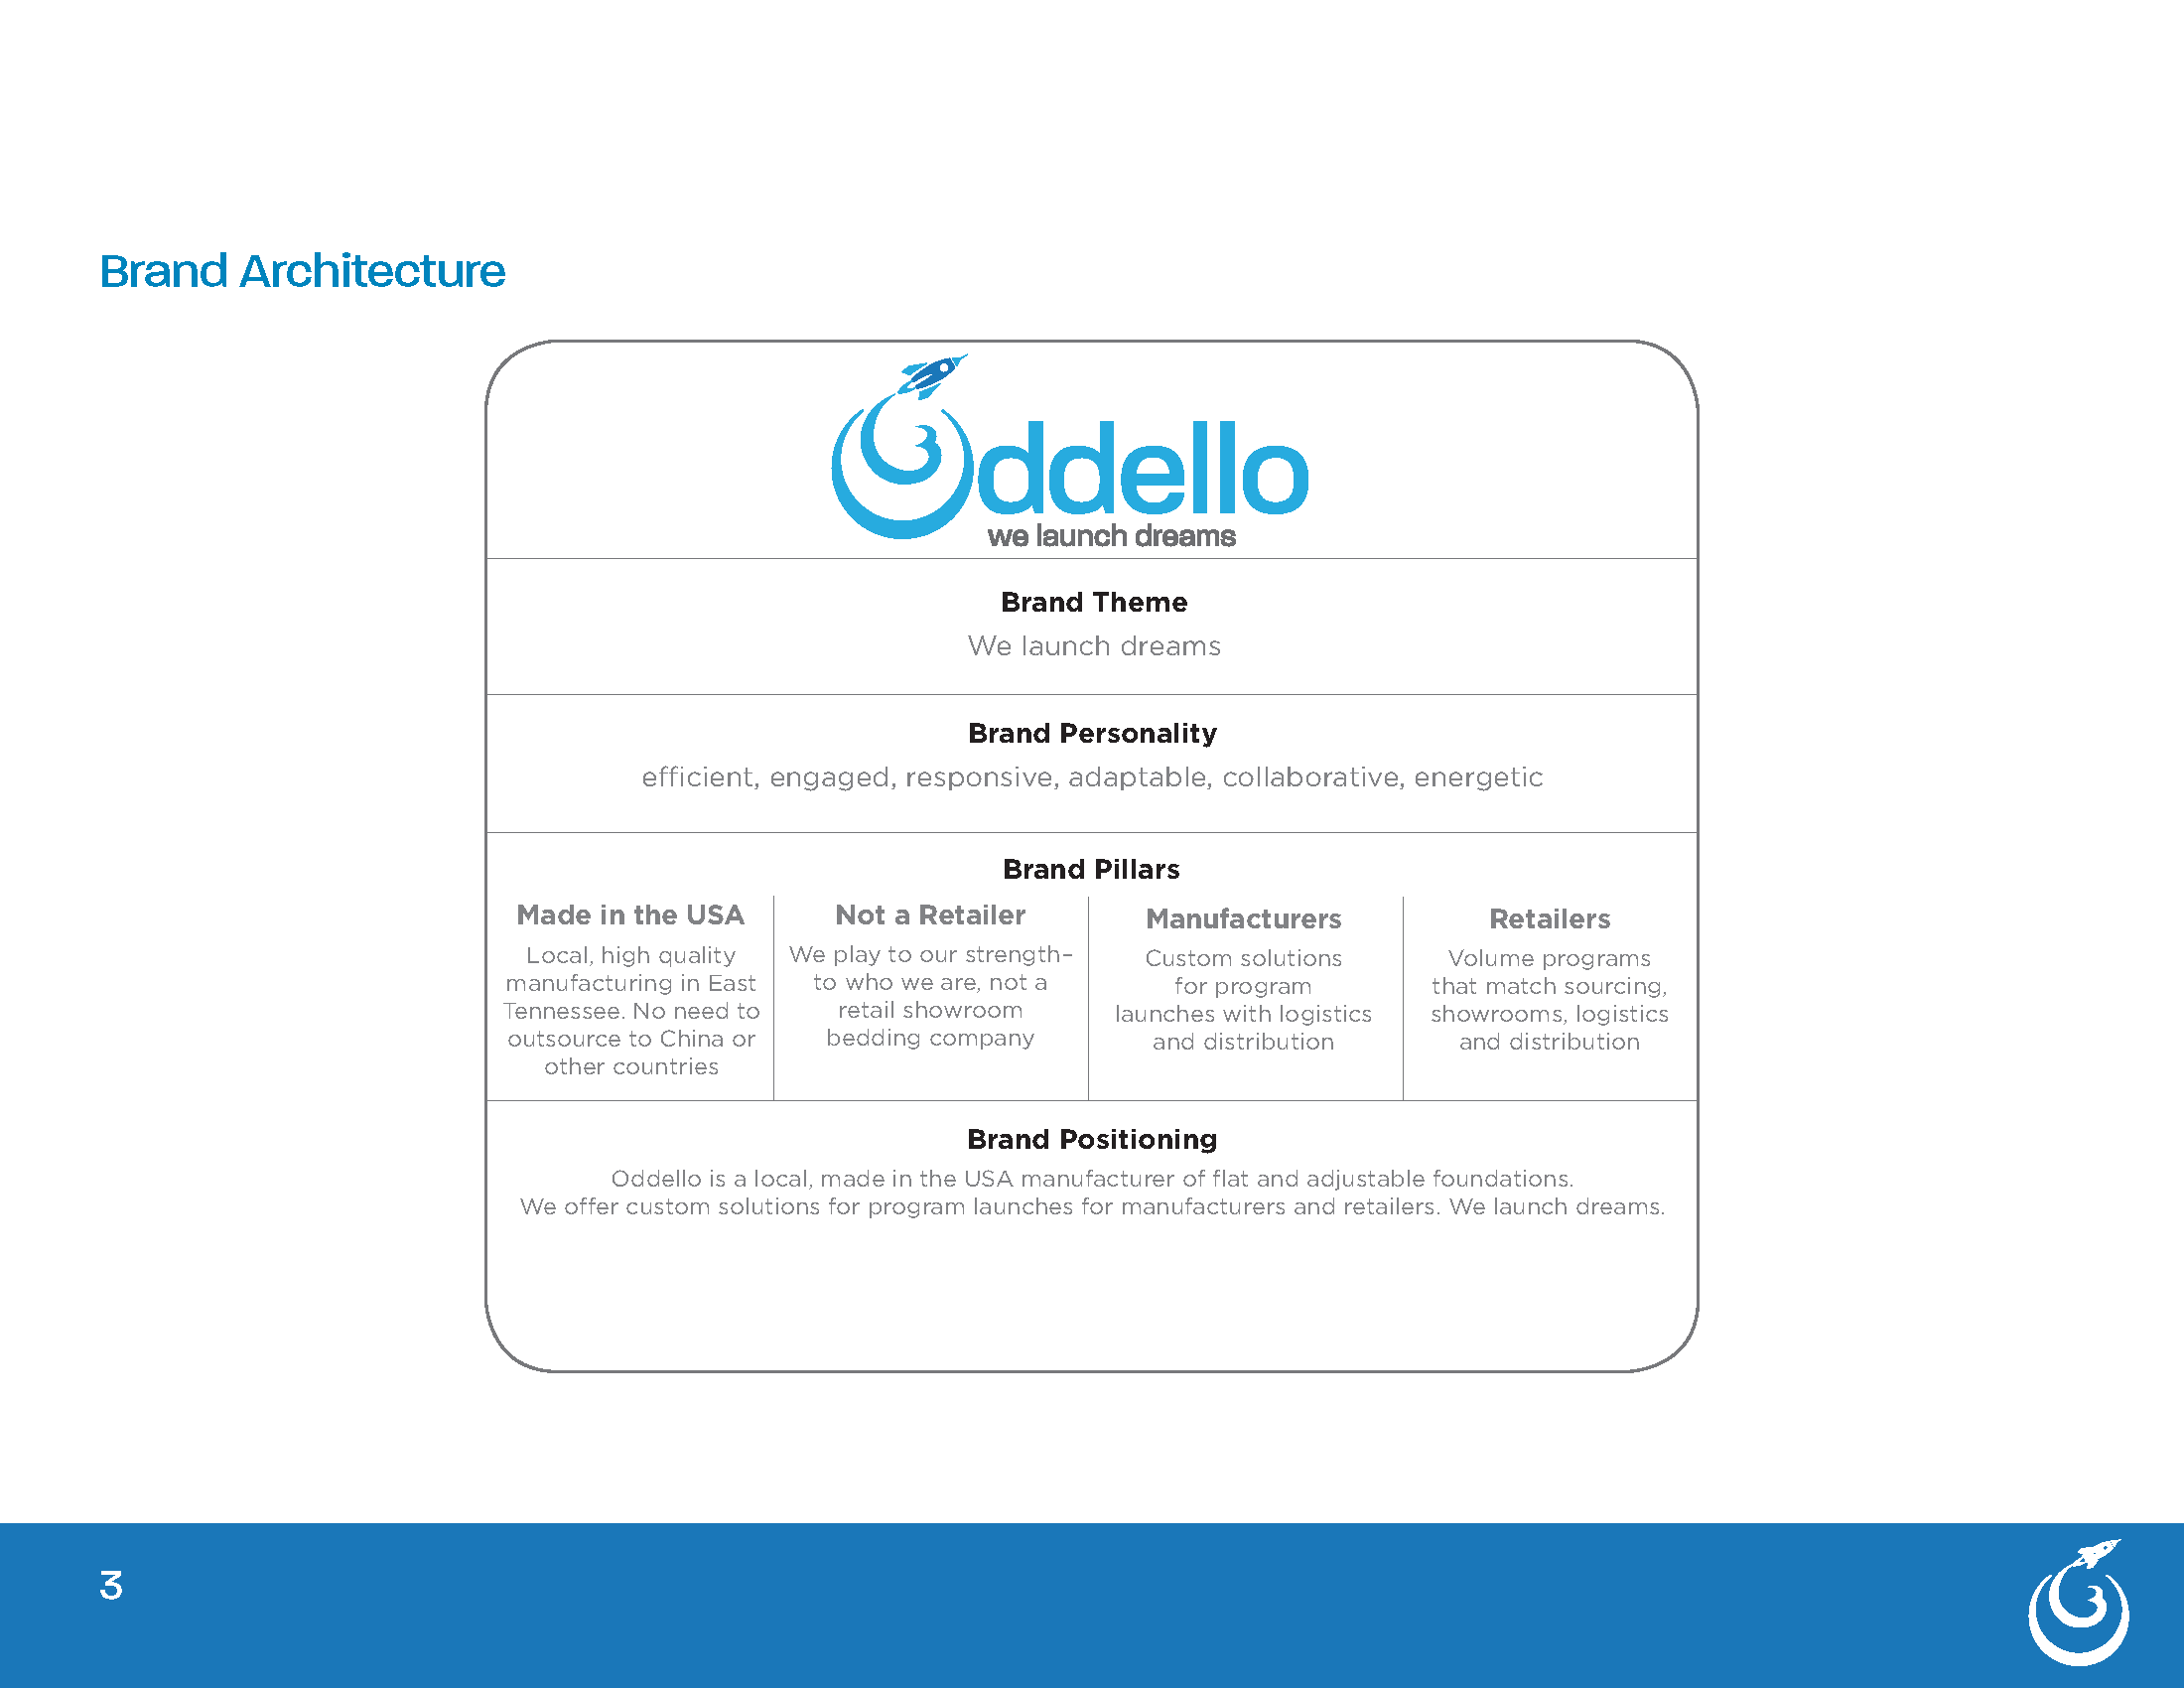 Oddello Brand Guide (1)_Page_2.png